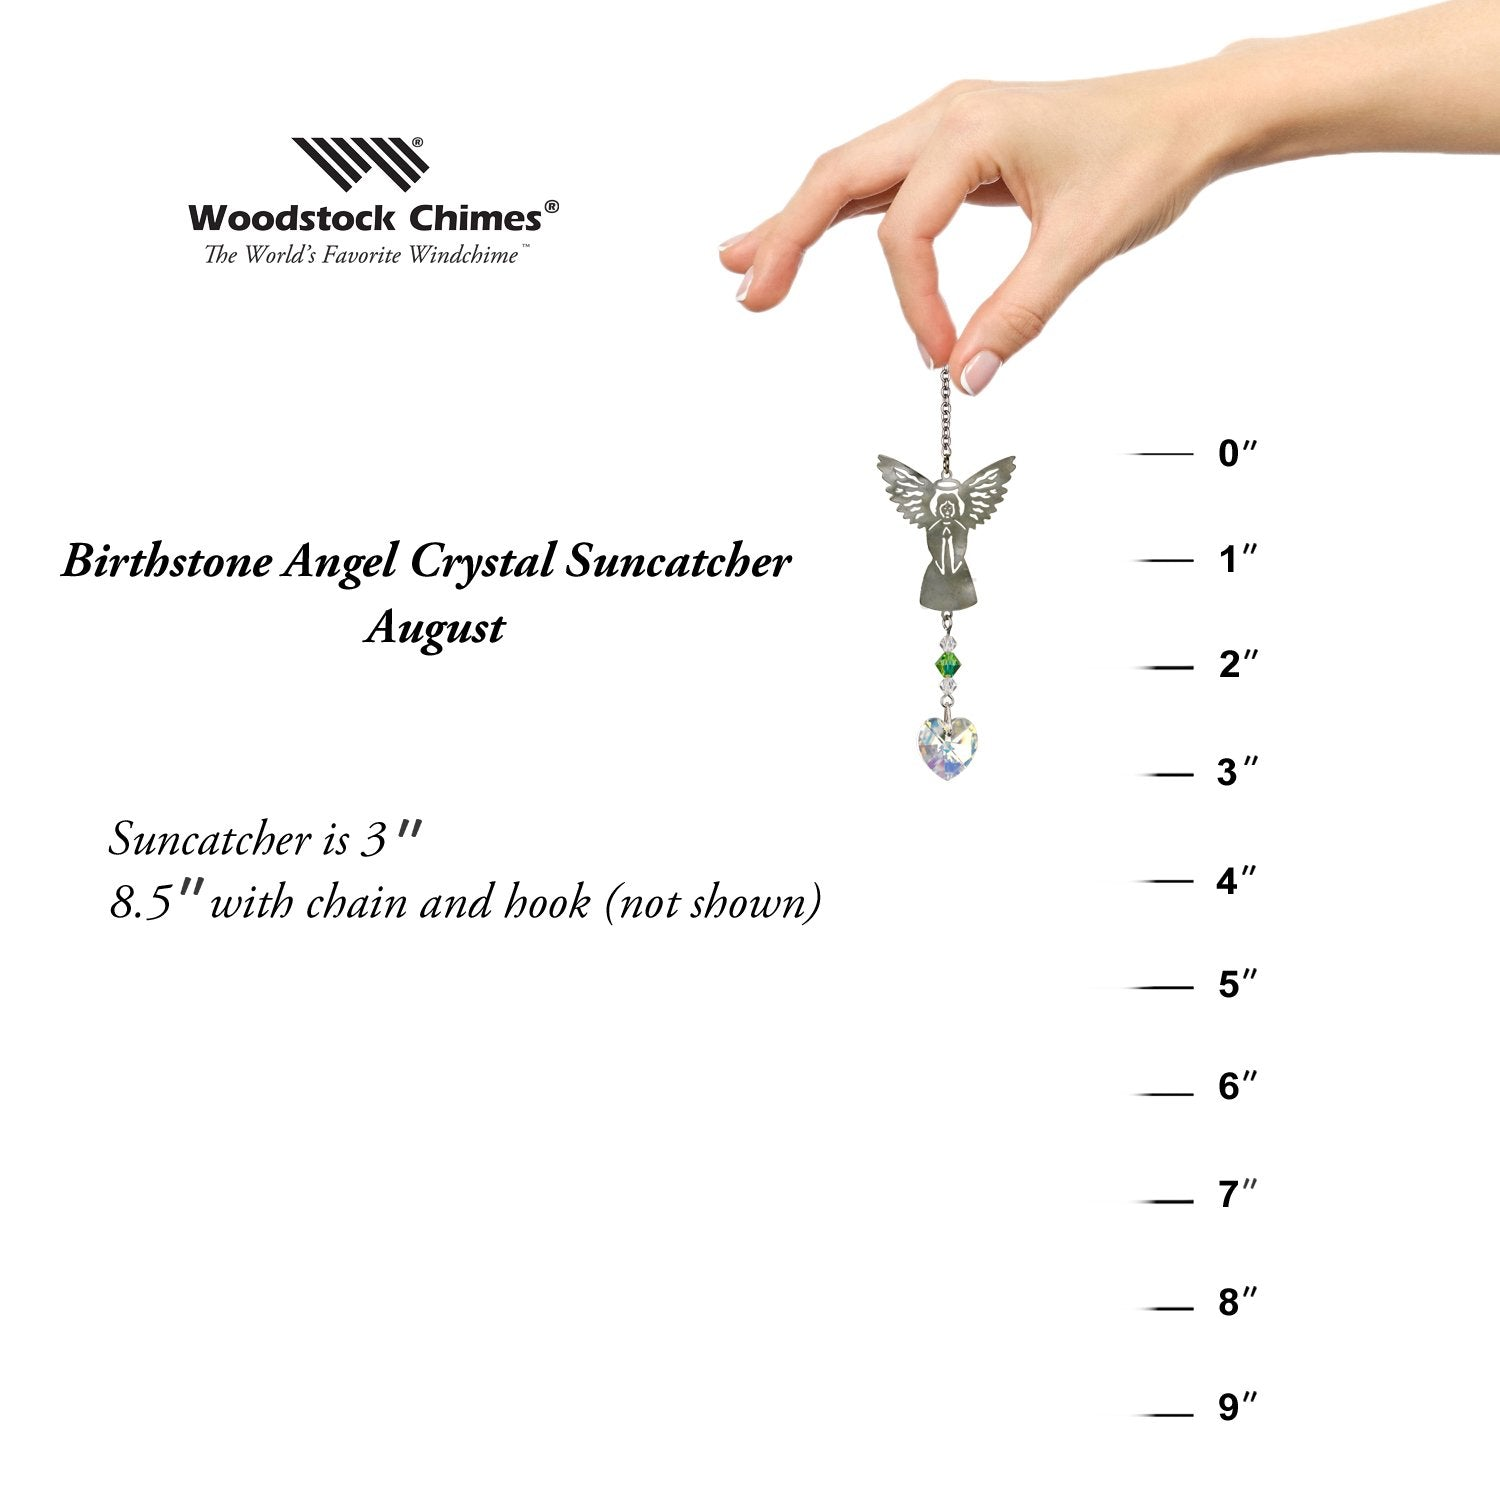 Birthstone Angel Crystal Suncatcher - August proportion image